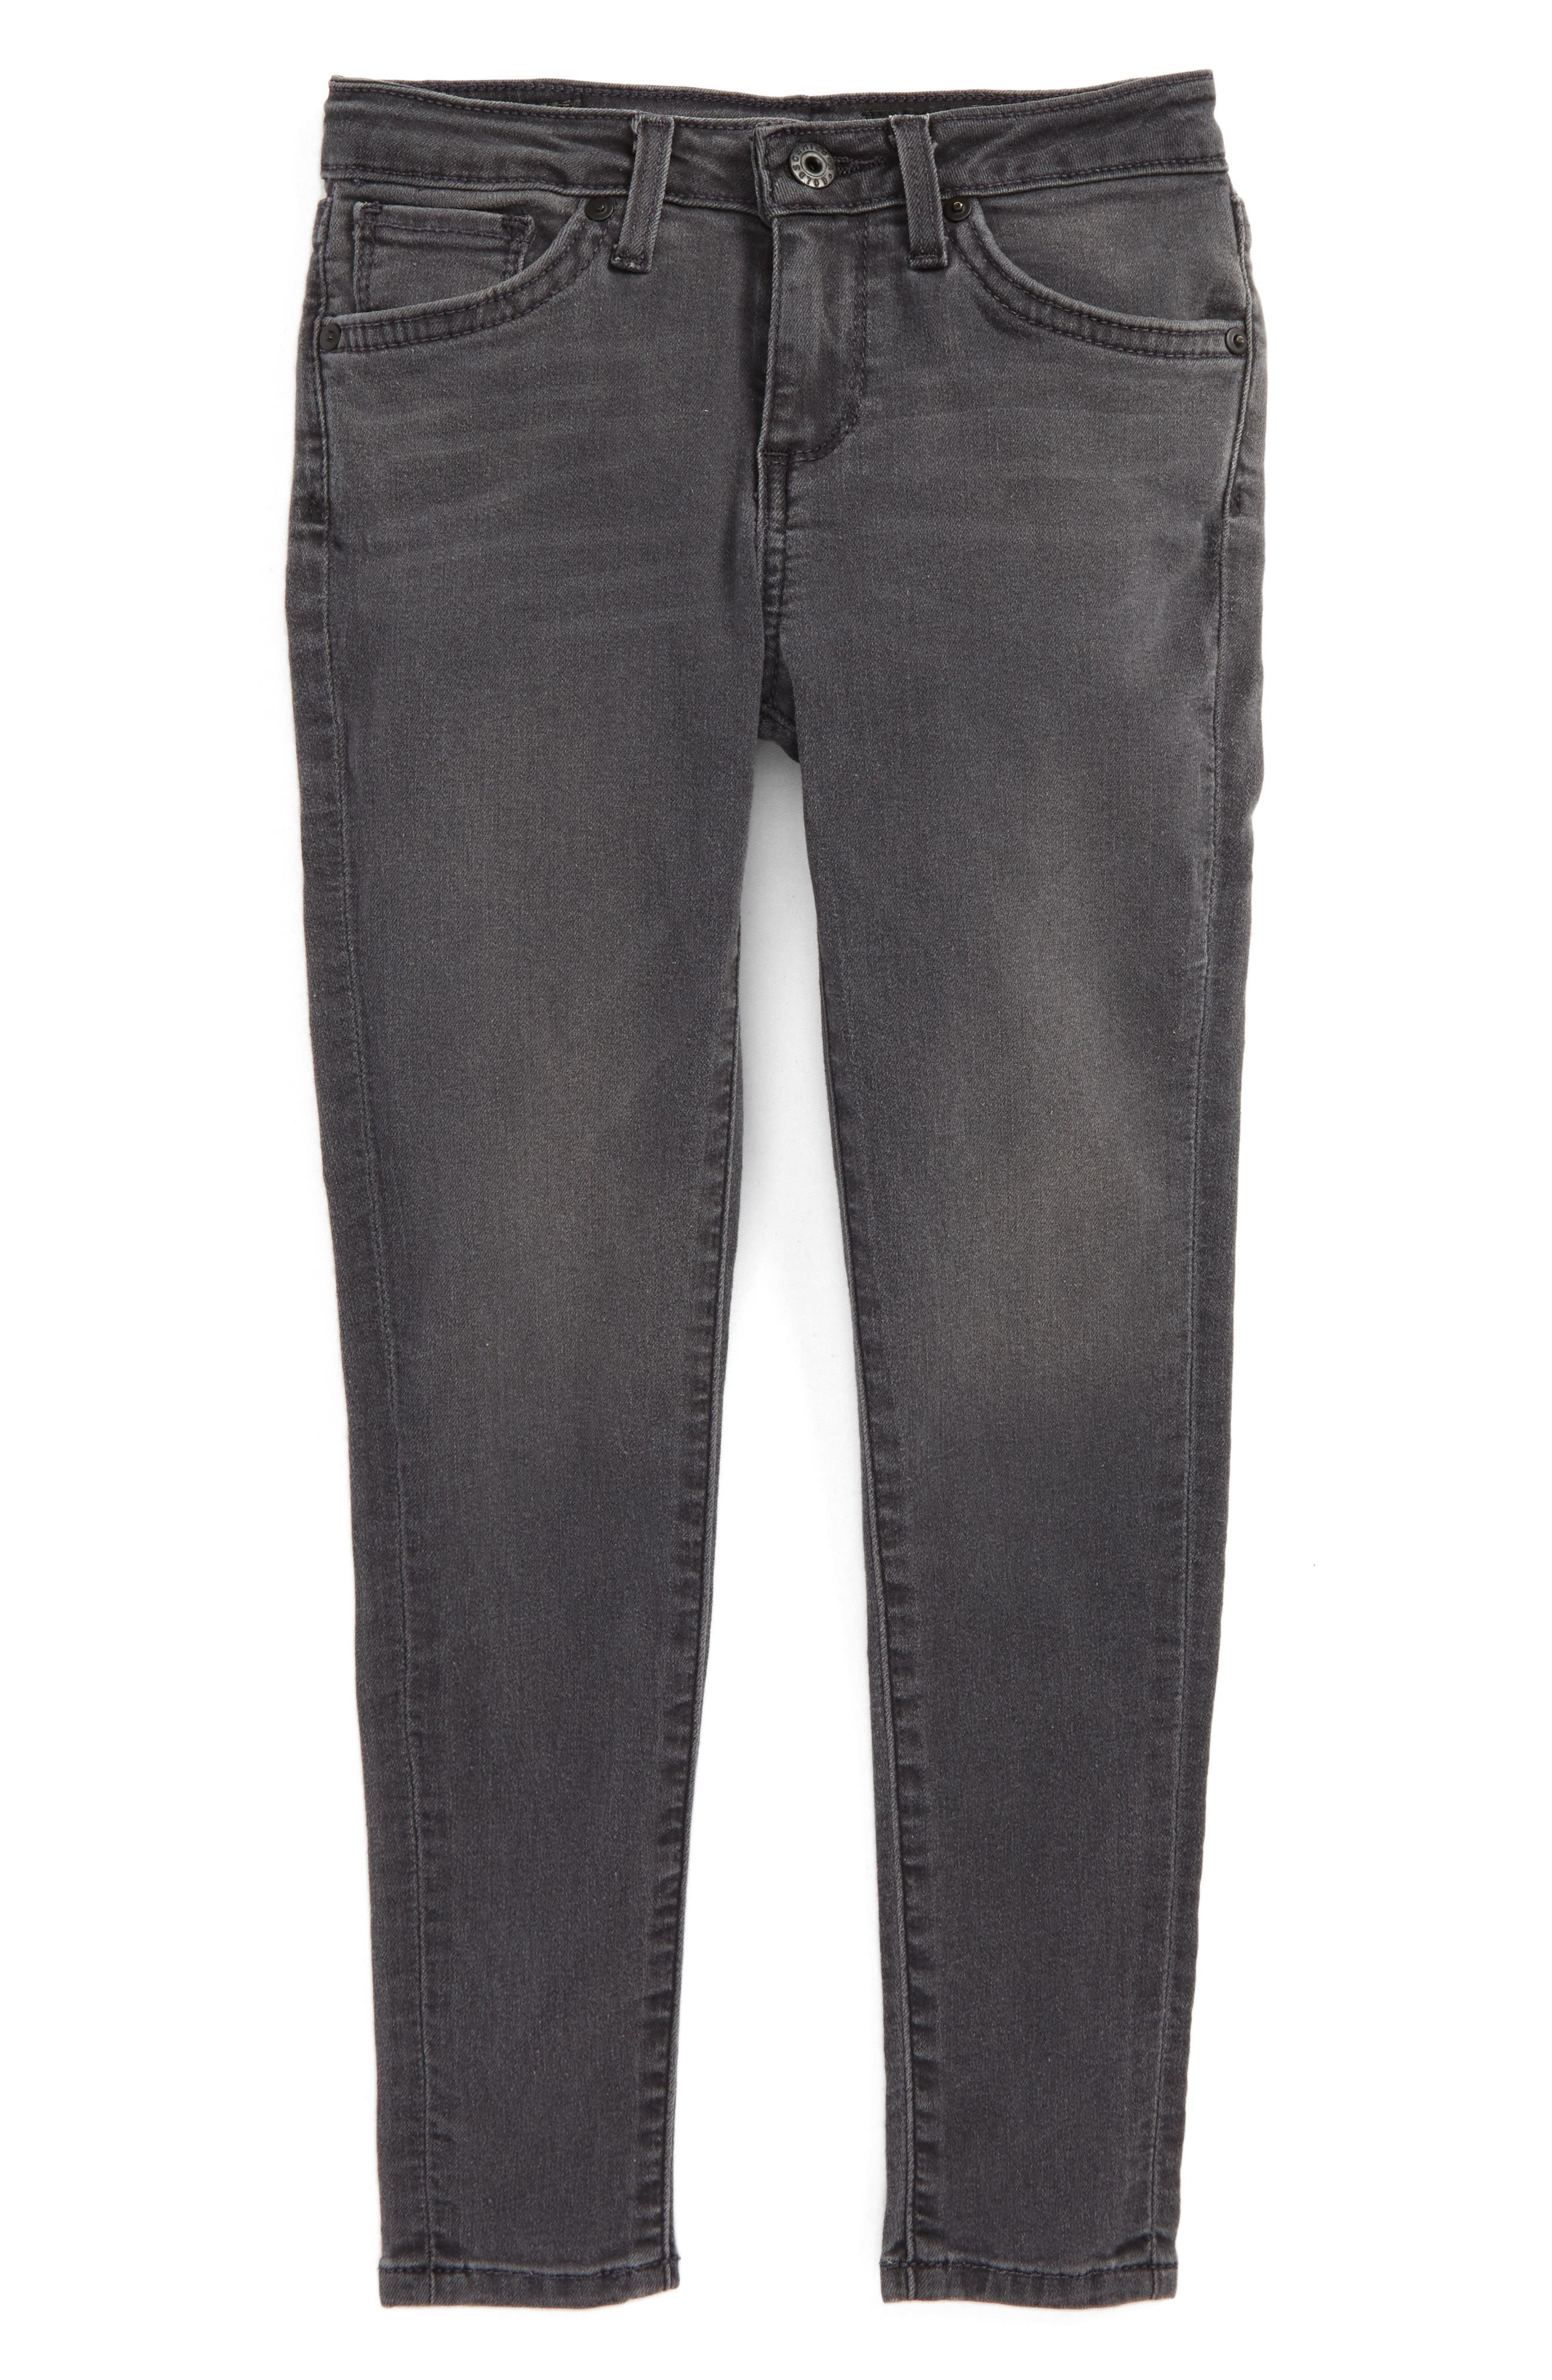 Twiggy Skinny Ankle Jeans,                             Main thumbnail 1, color,                             Fulton Wash